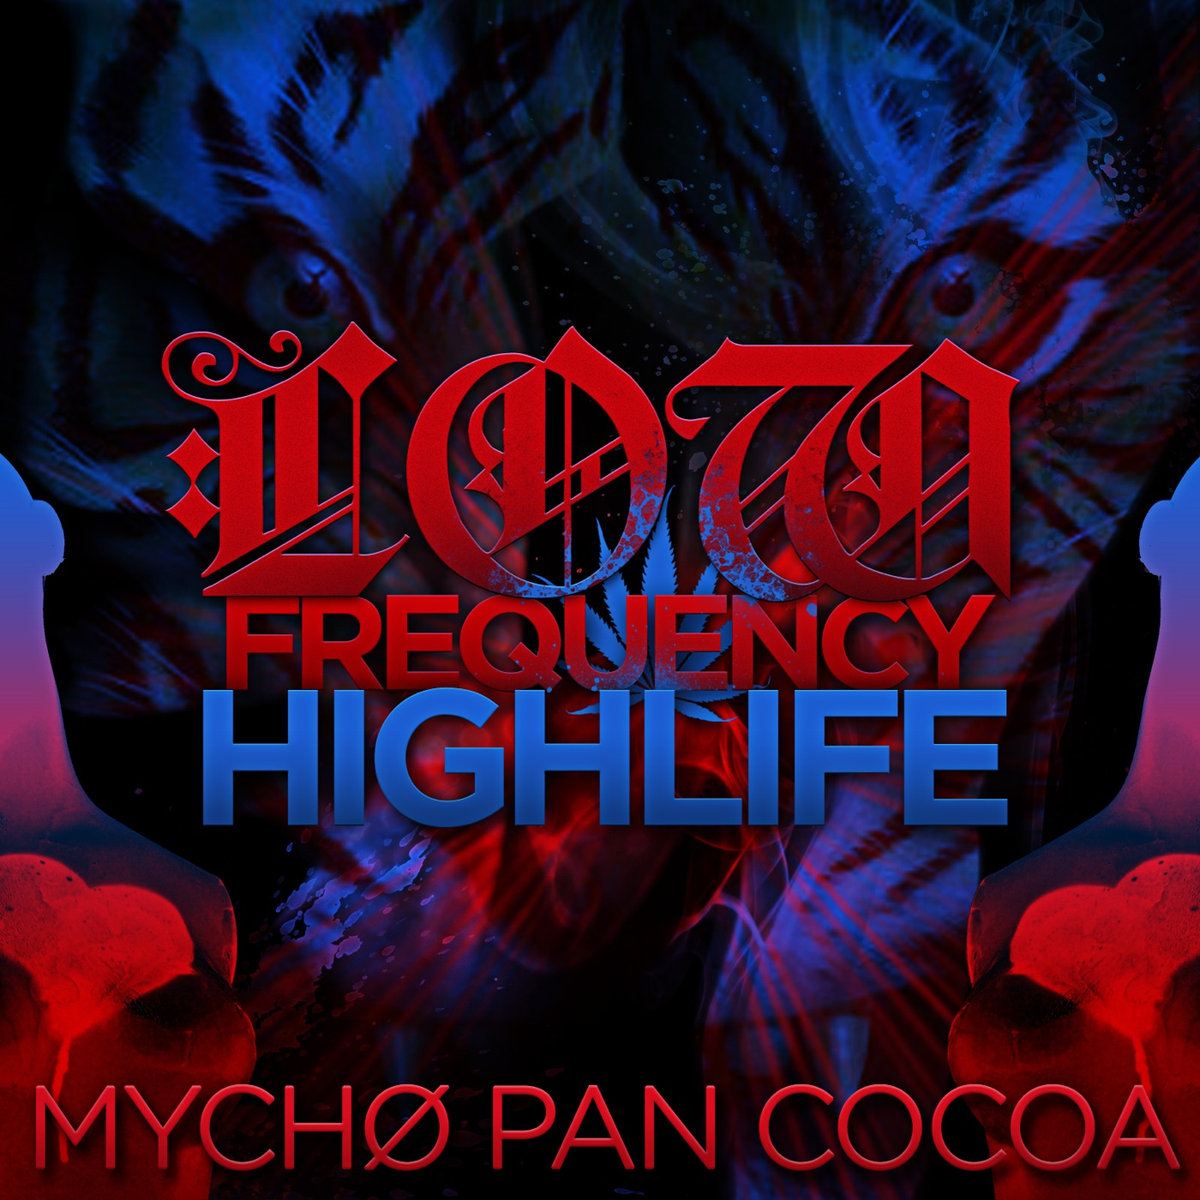 Mycho Pan Cocoa - On The Prowl On The Sly (Ribotto Mixdown Mix) @ 'Low Frequency High Life' album (electronic, dubstep)